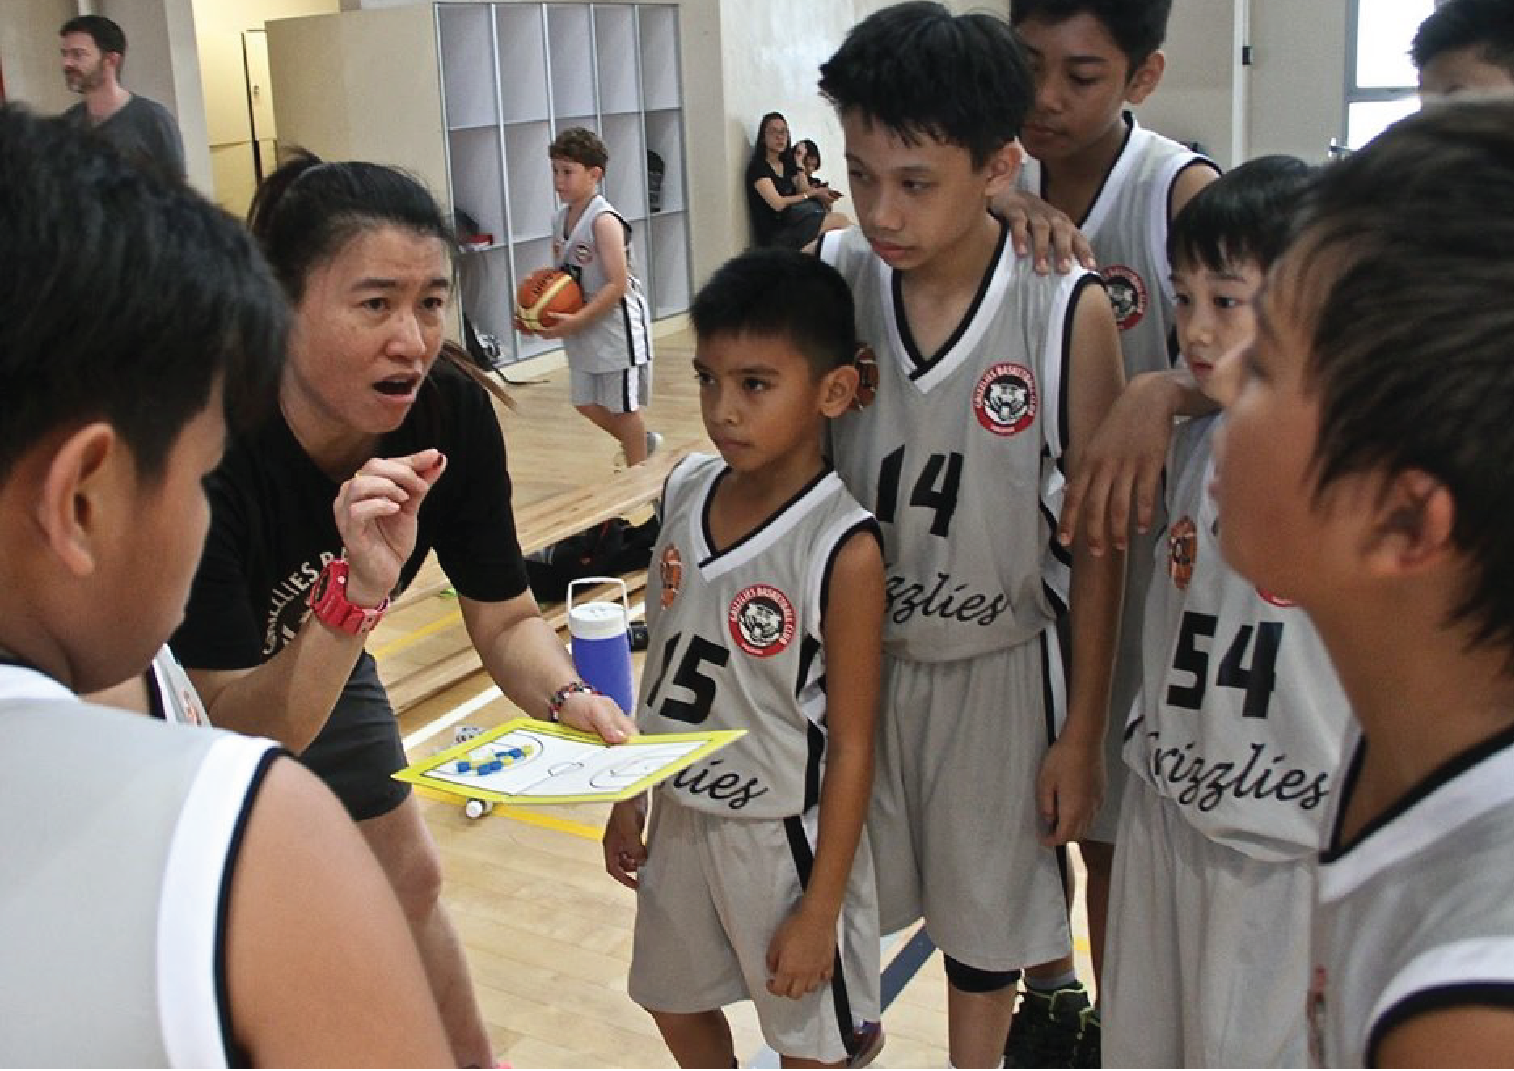 SG Basketball @ CIS Lakeside - Address: 7 Jurong West Street 41, Singapore 649414